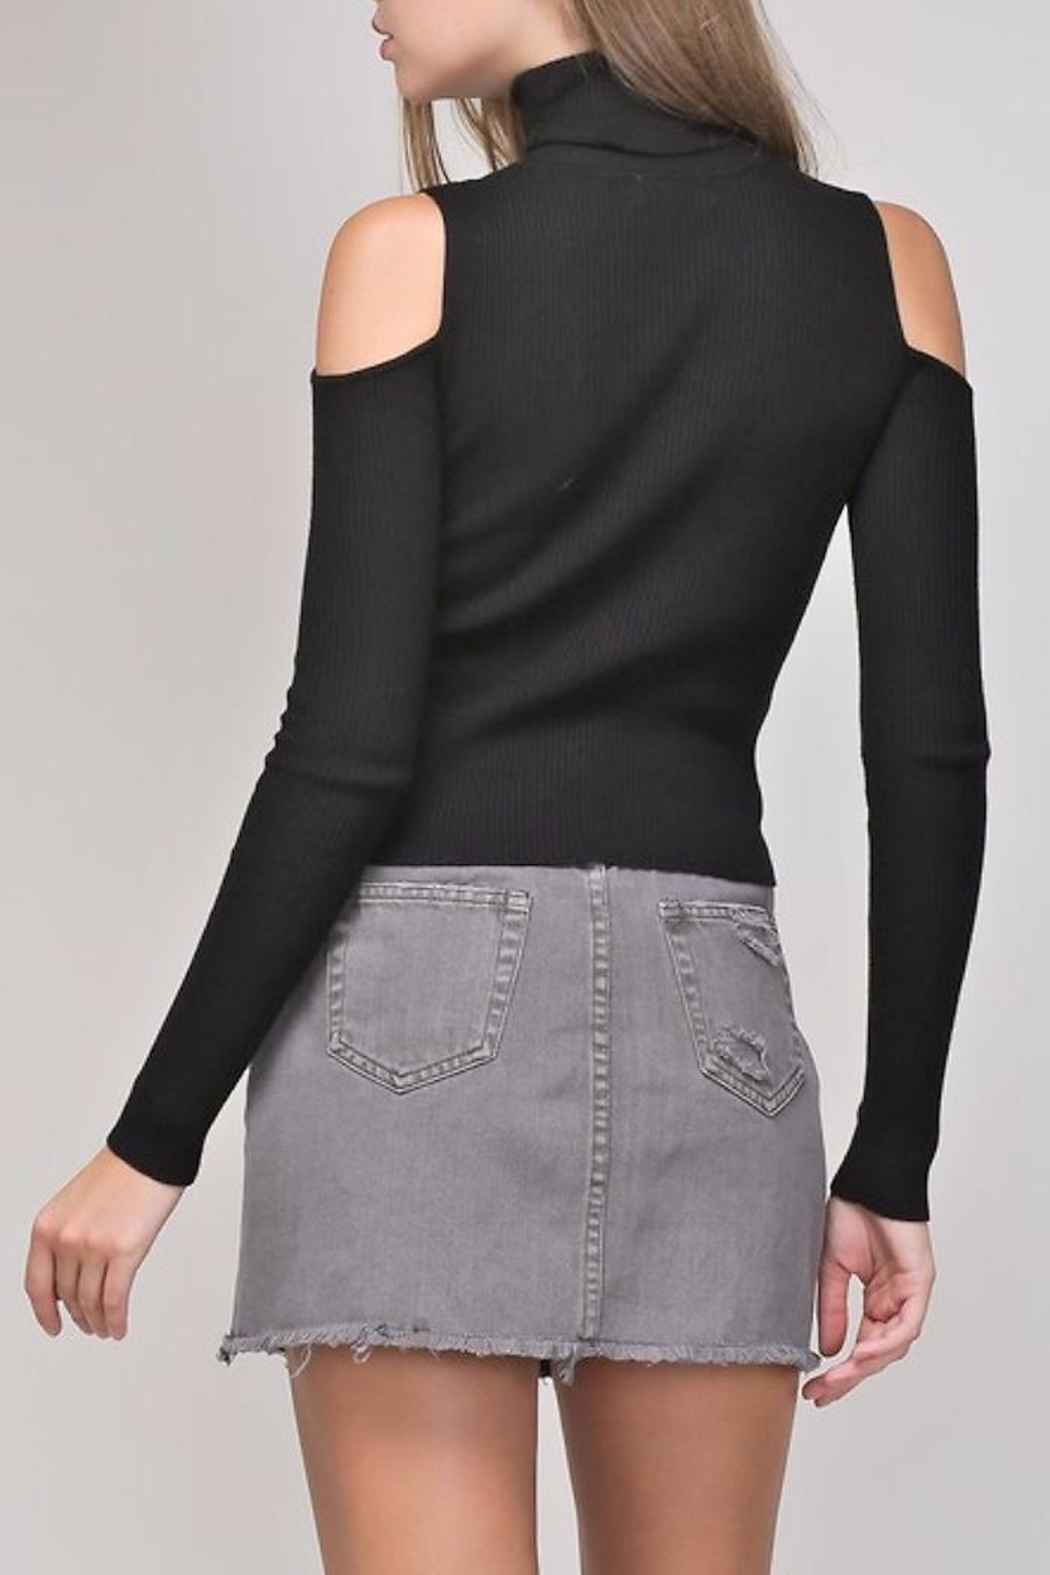 People Outfitter Mia Knit Top - Front Full Image